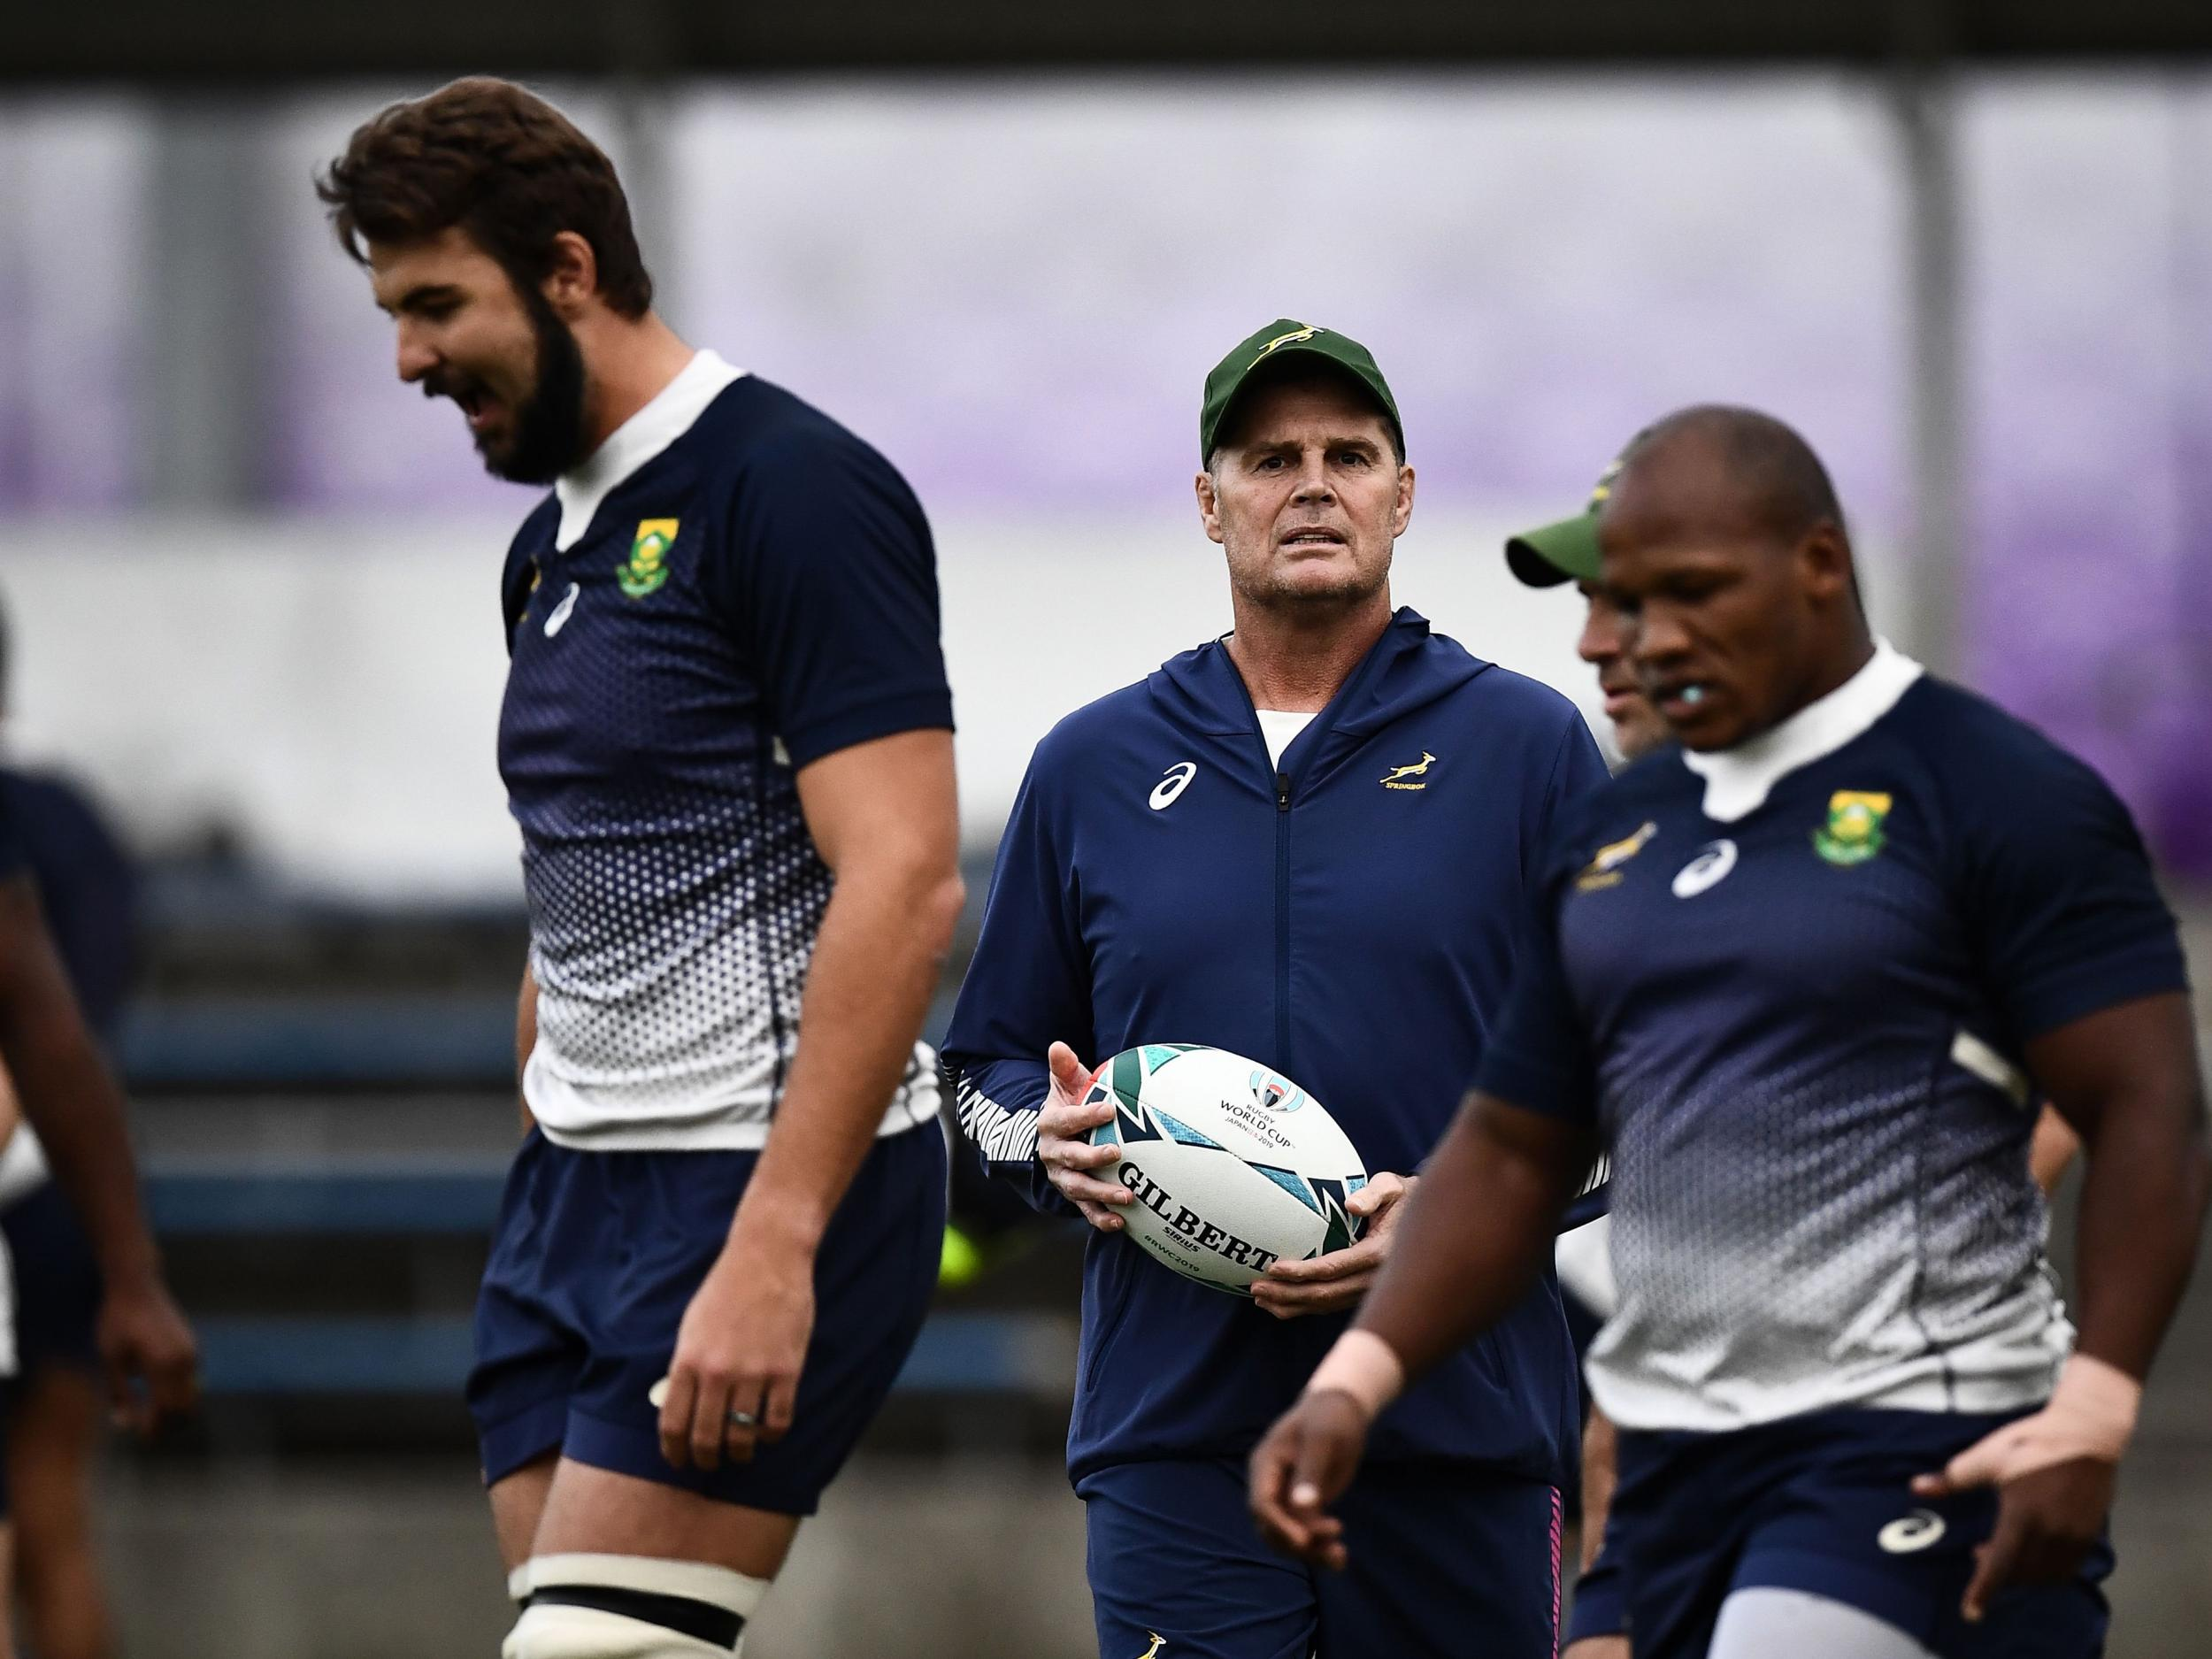 Rugby World Cup 2019: South Africa bring back their big guns for quarter-final against Japan